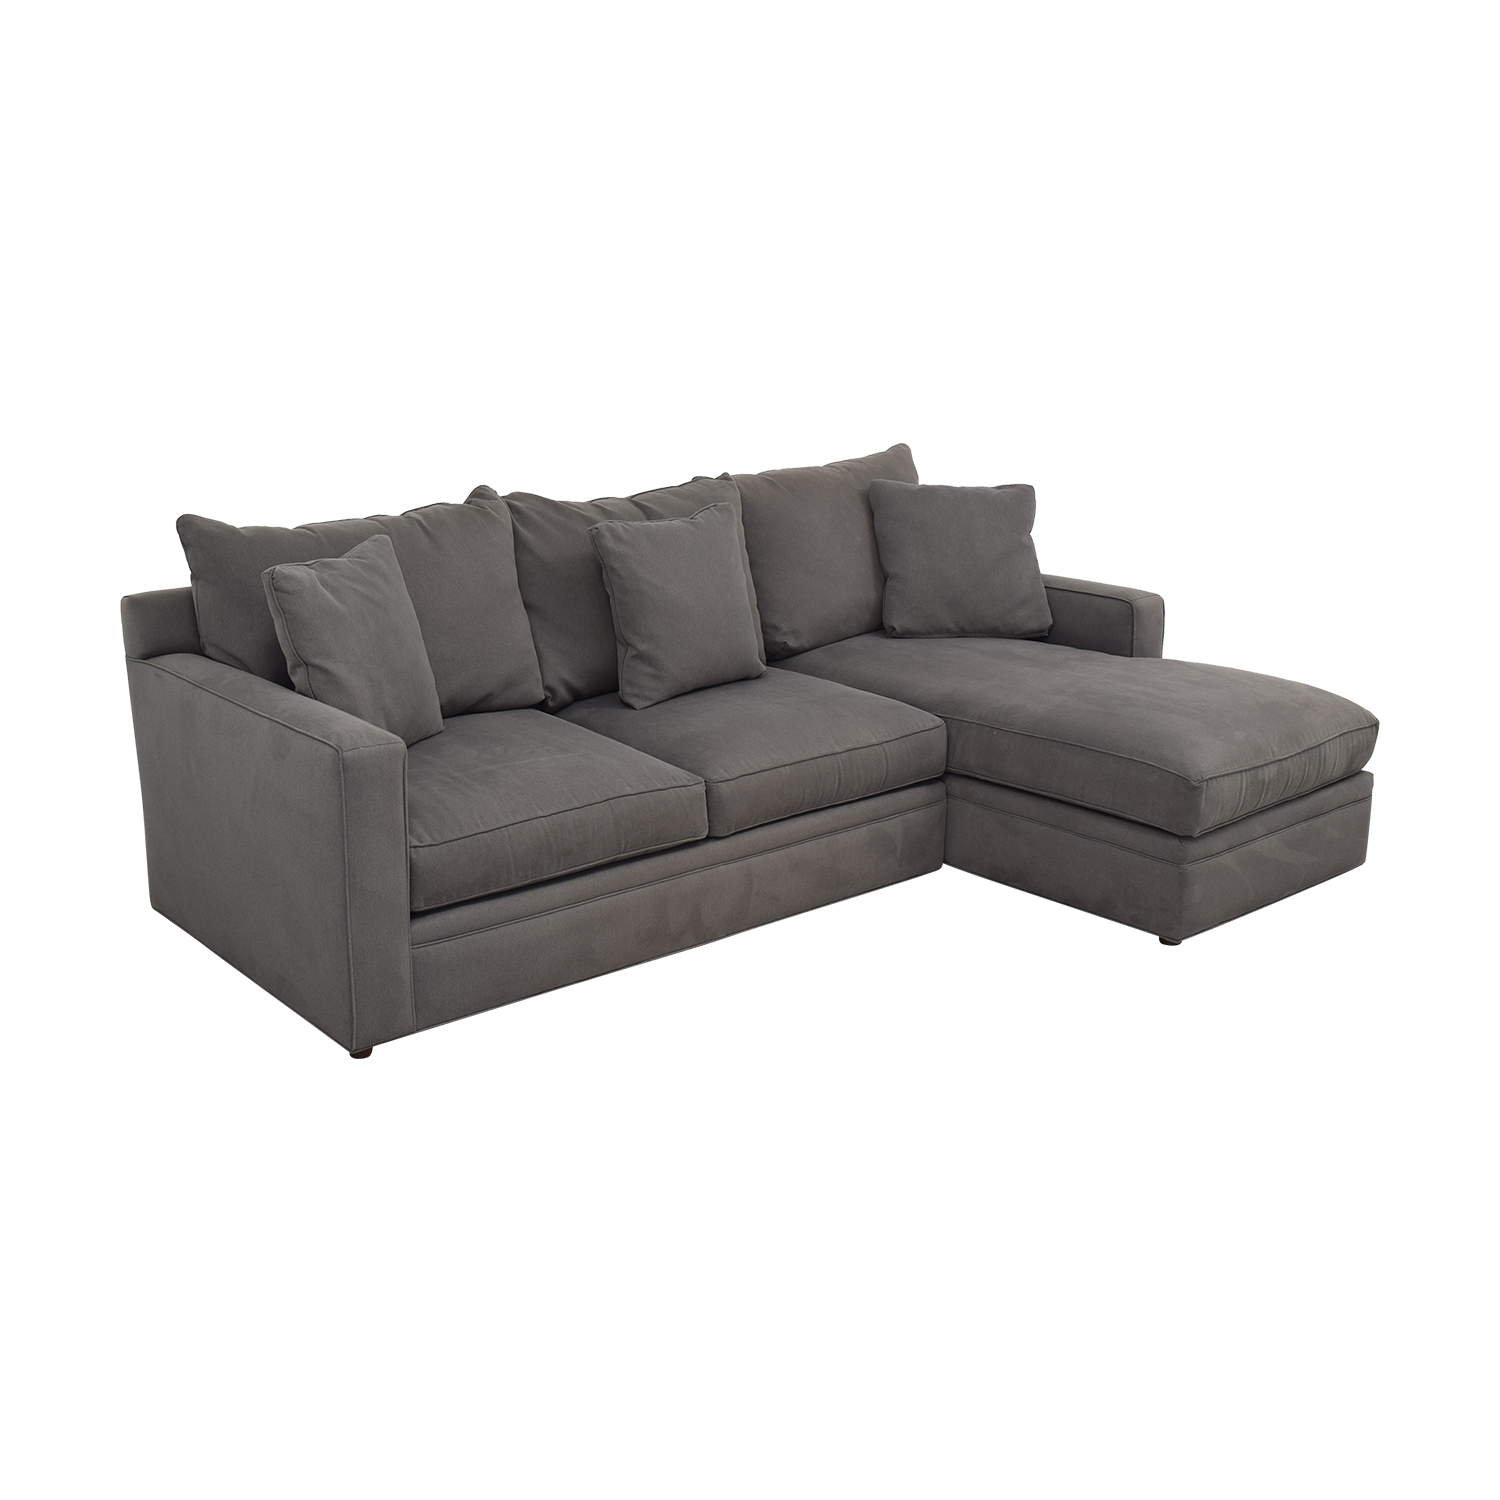 Room & Board Room & Board Orson Sectional Sofa with Chaise dimensions